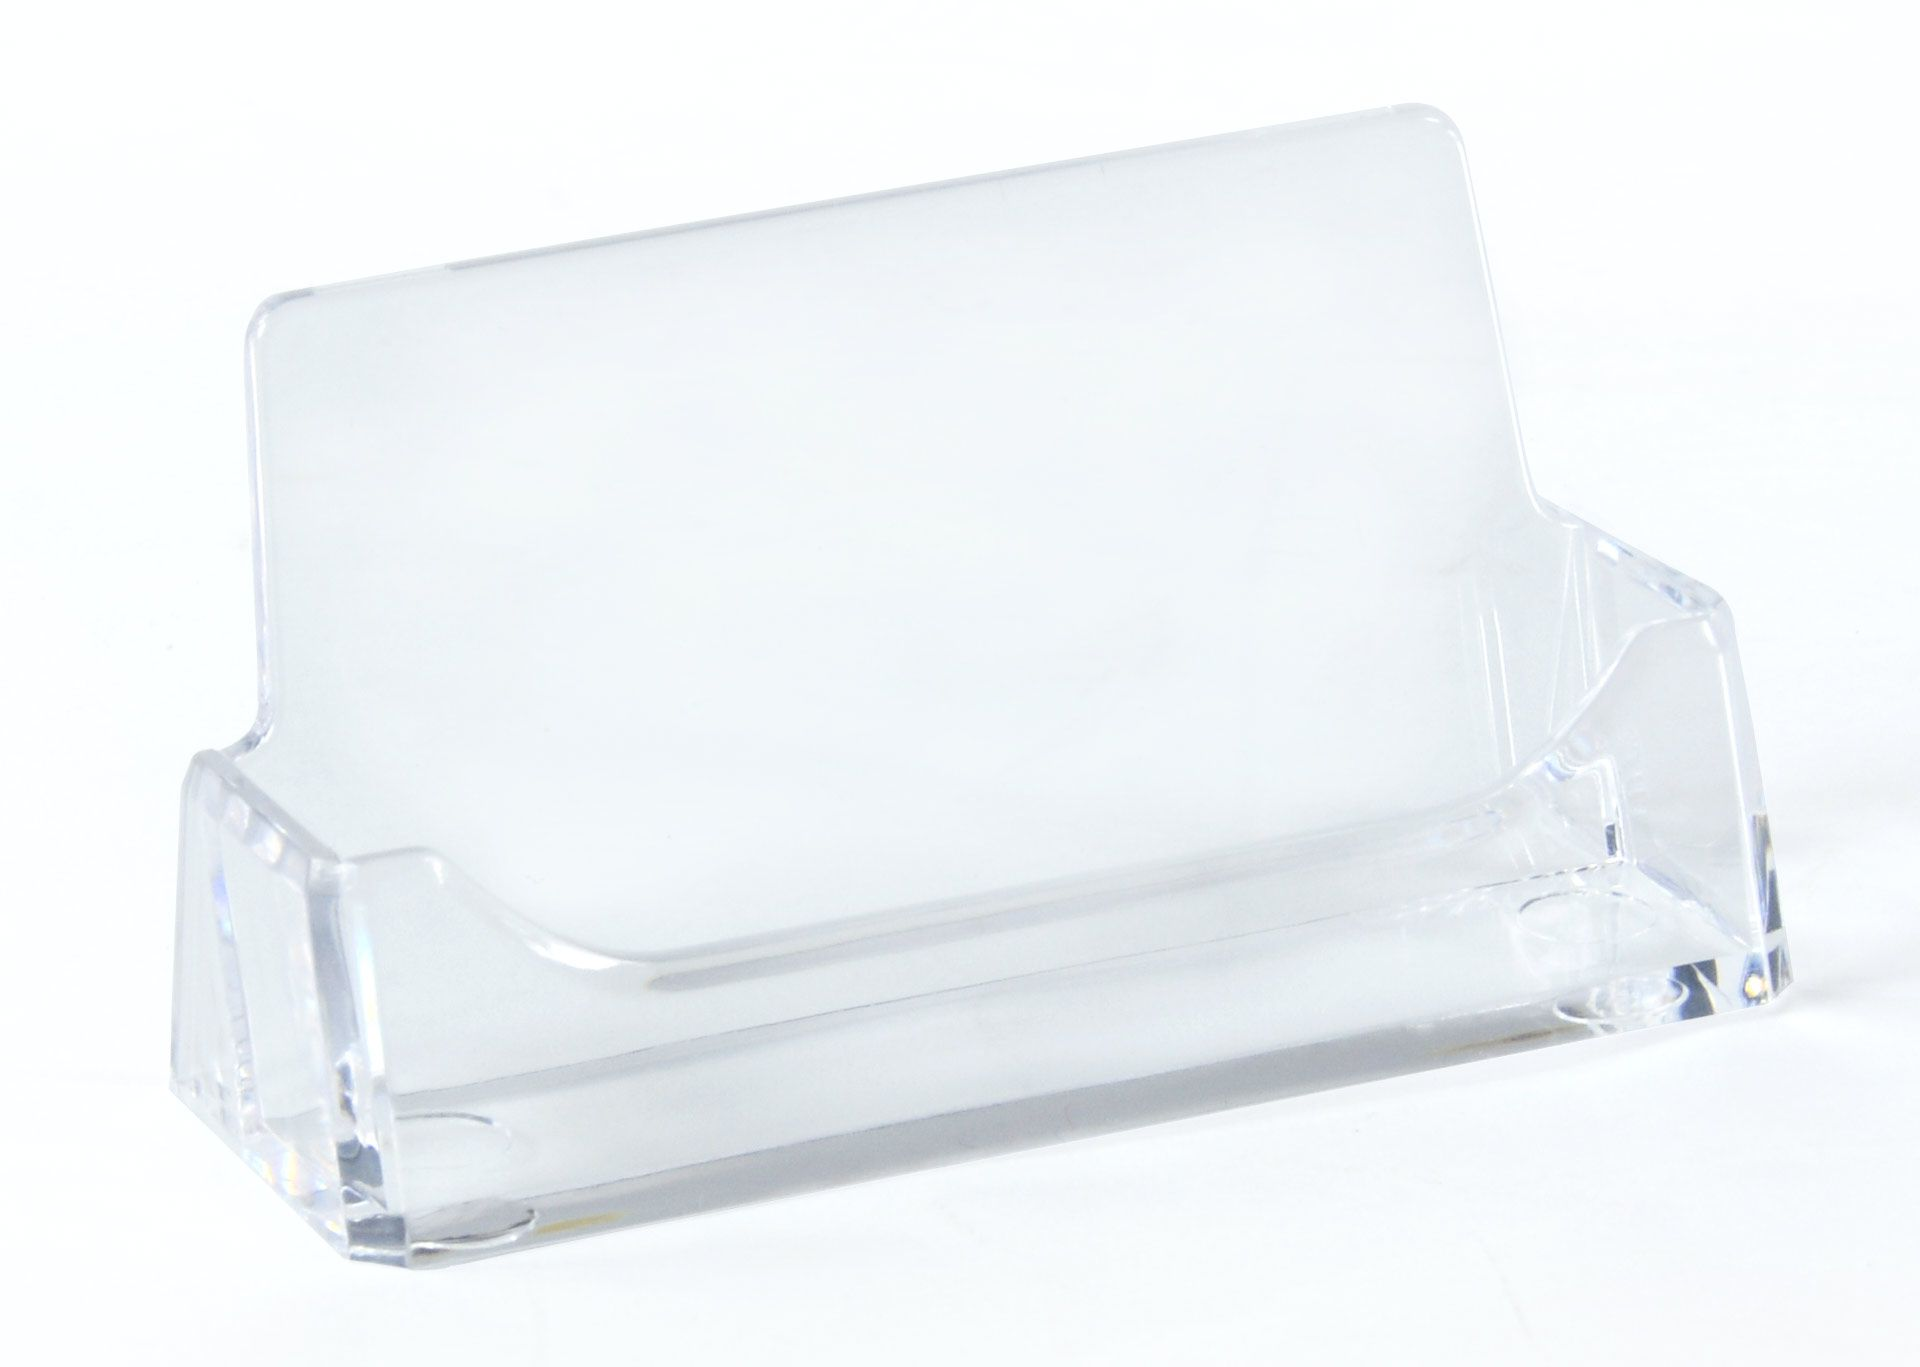 Single Pocket Acrylic Business Card Holder For Tabletop Fits 49 Cards Clear In 2021 Business Card Holders Gift Card Displays Acrylic Designs